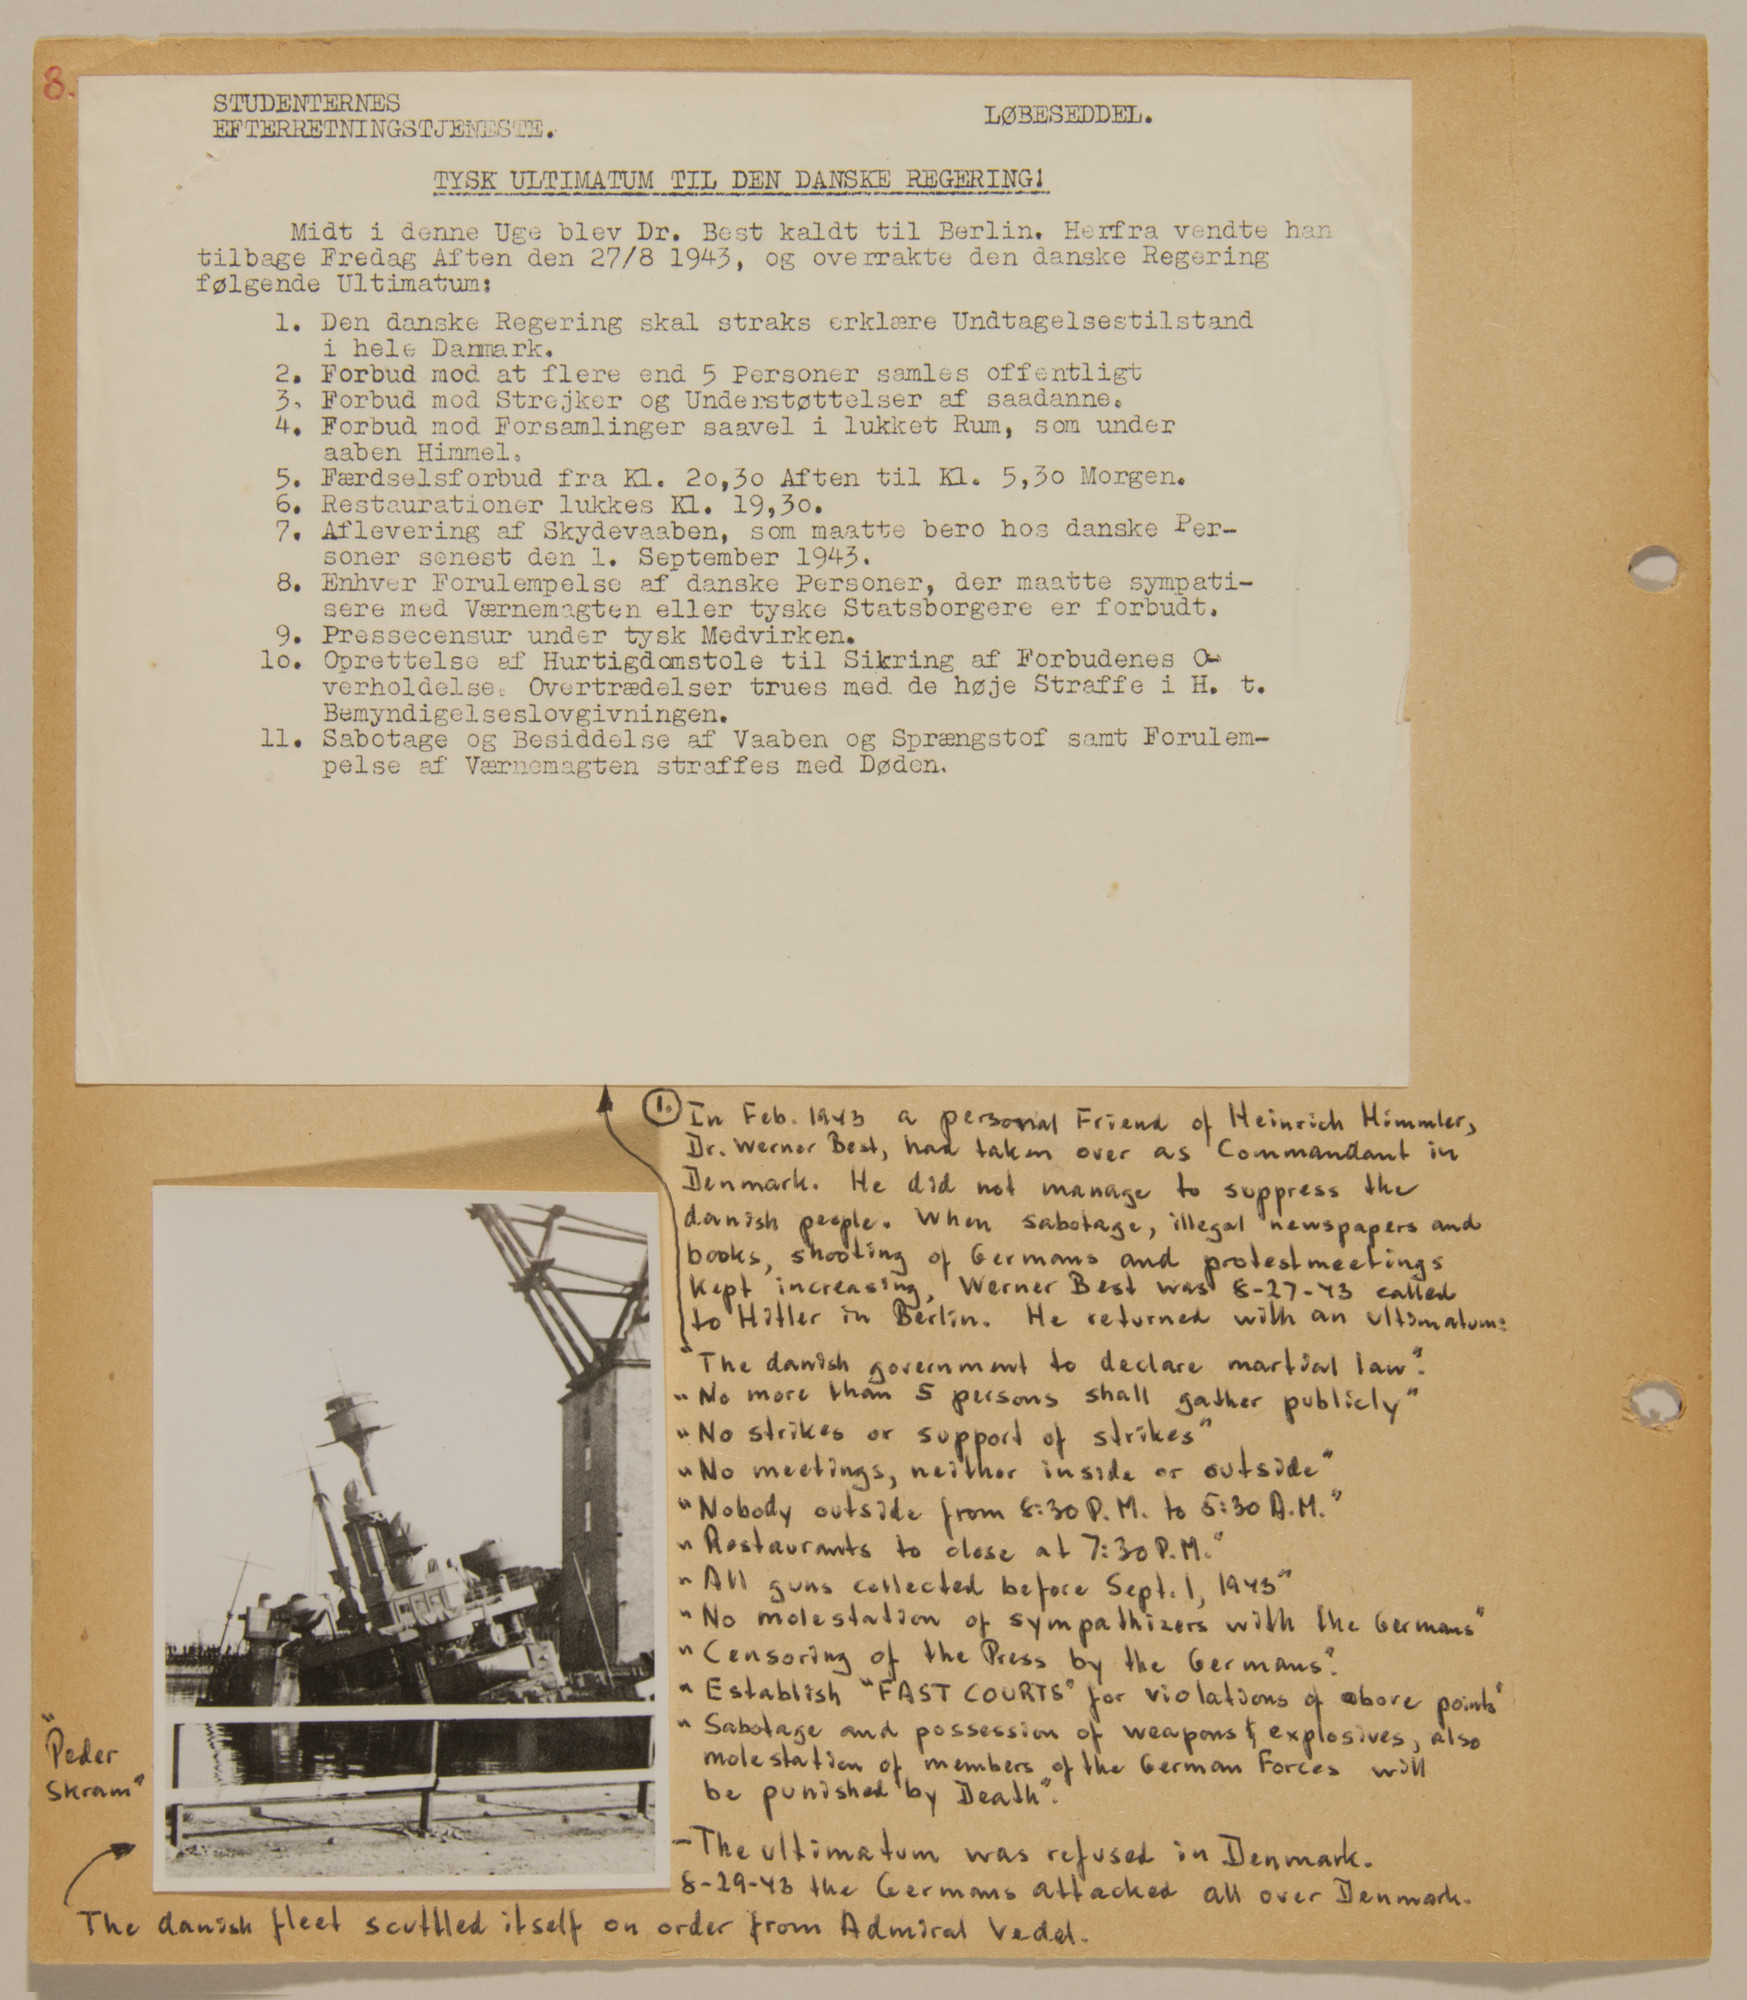 Page from volume four of a set of scrapbooks compiled by Bjorn Sibbern, a Danish policeman and resistance member, documenting the German occupation of Denmark.  This page contains the ultimatum Berlin gave Werner Best in February 1943 to suppress the underground and sabotage movement.